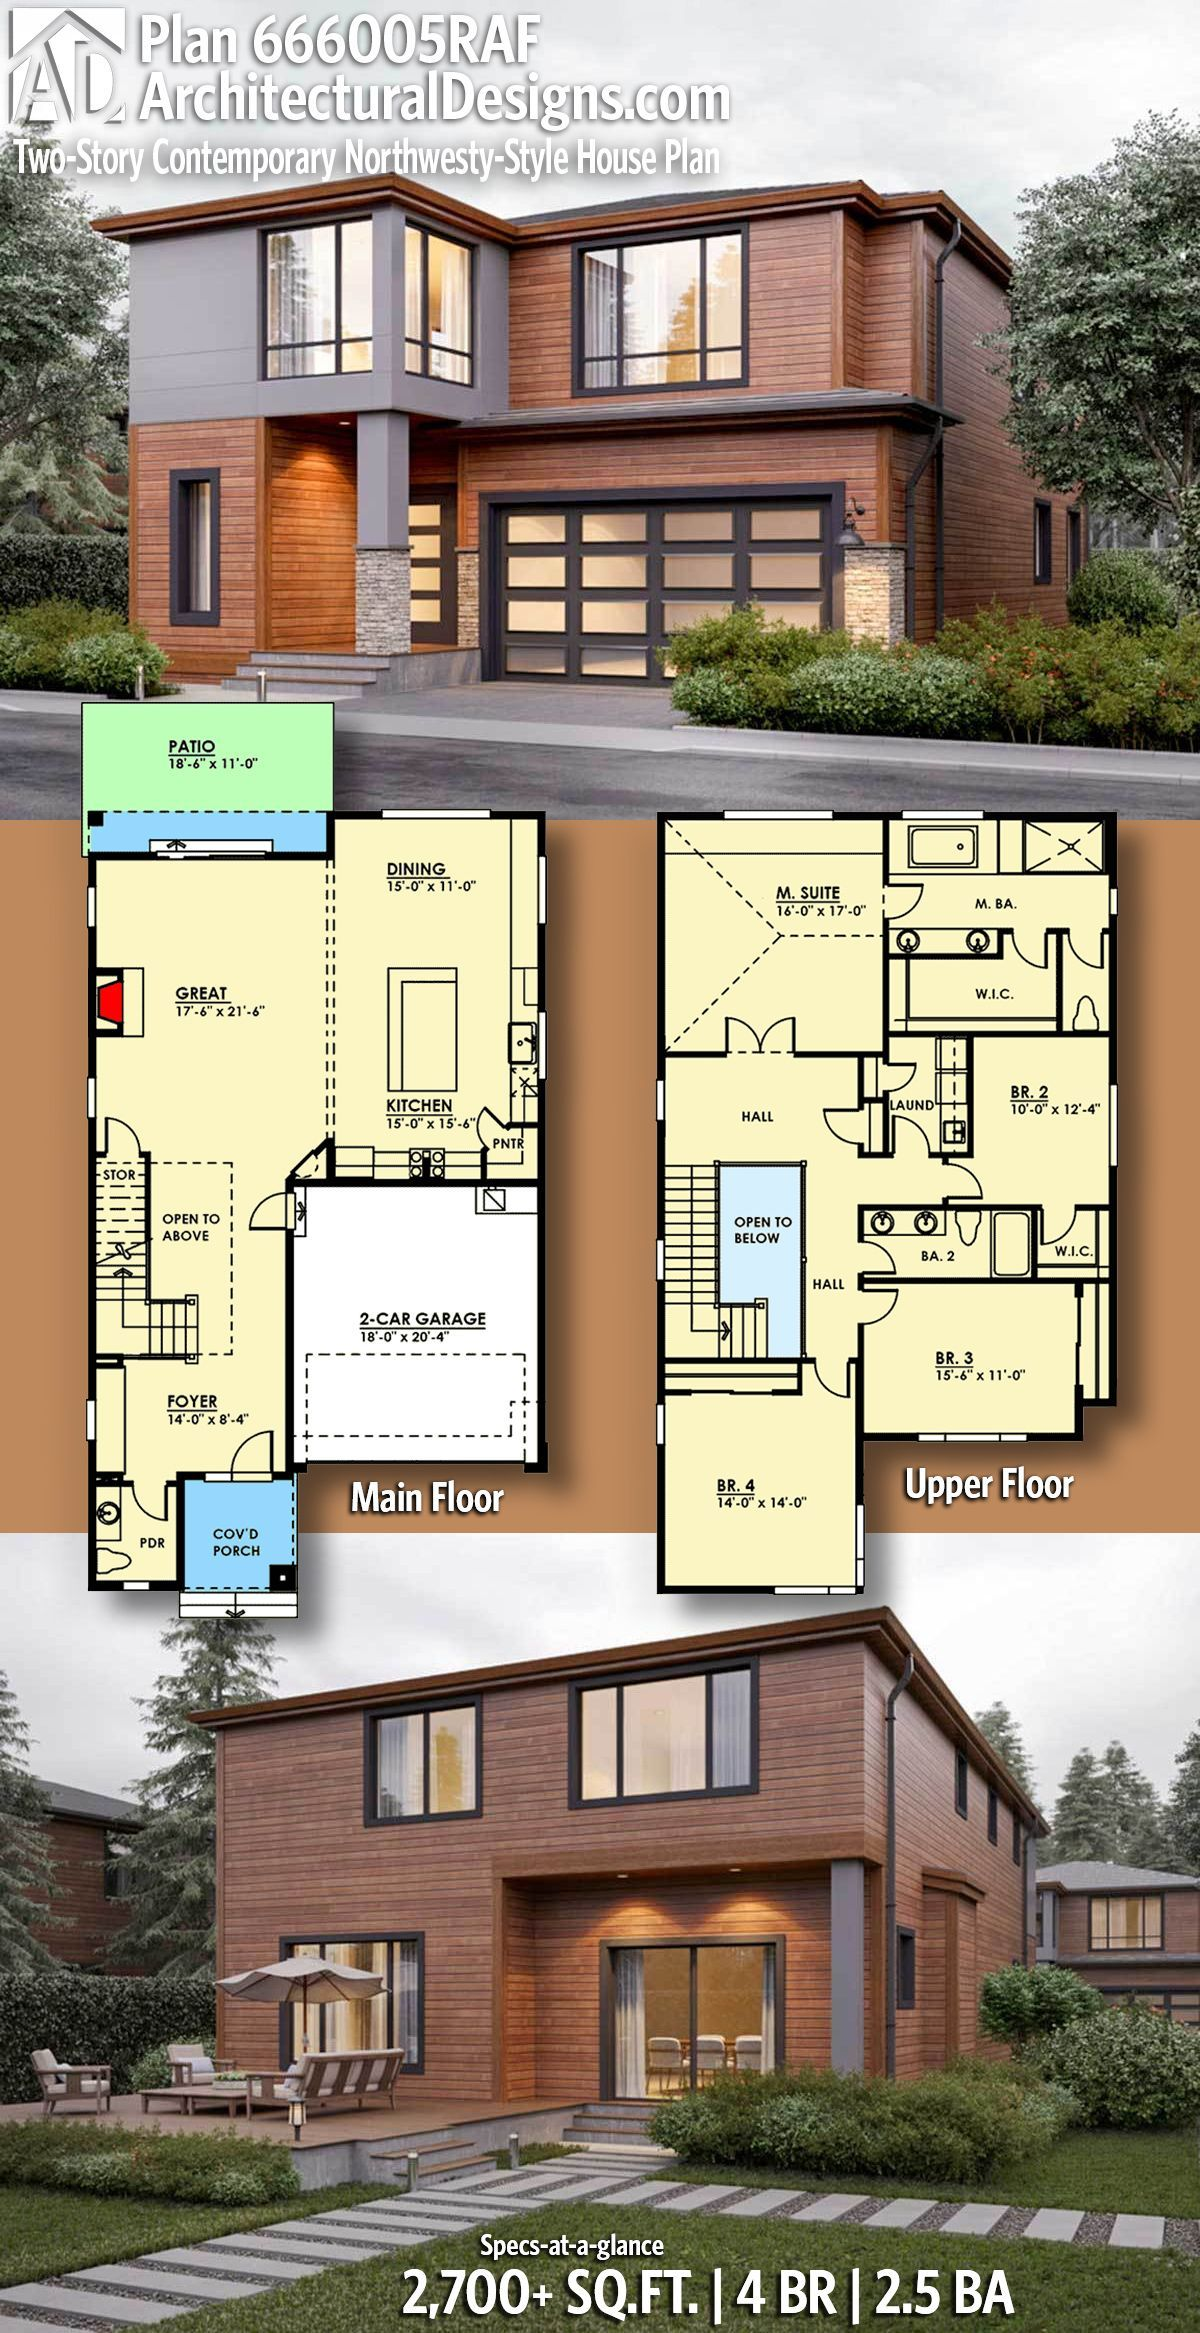 Plan 666005RAF Two Story Contemporary Northwesty Style House Plan